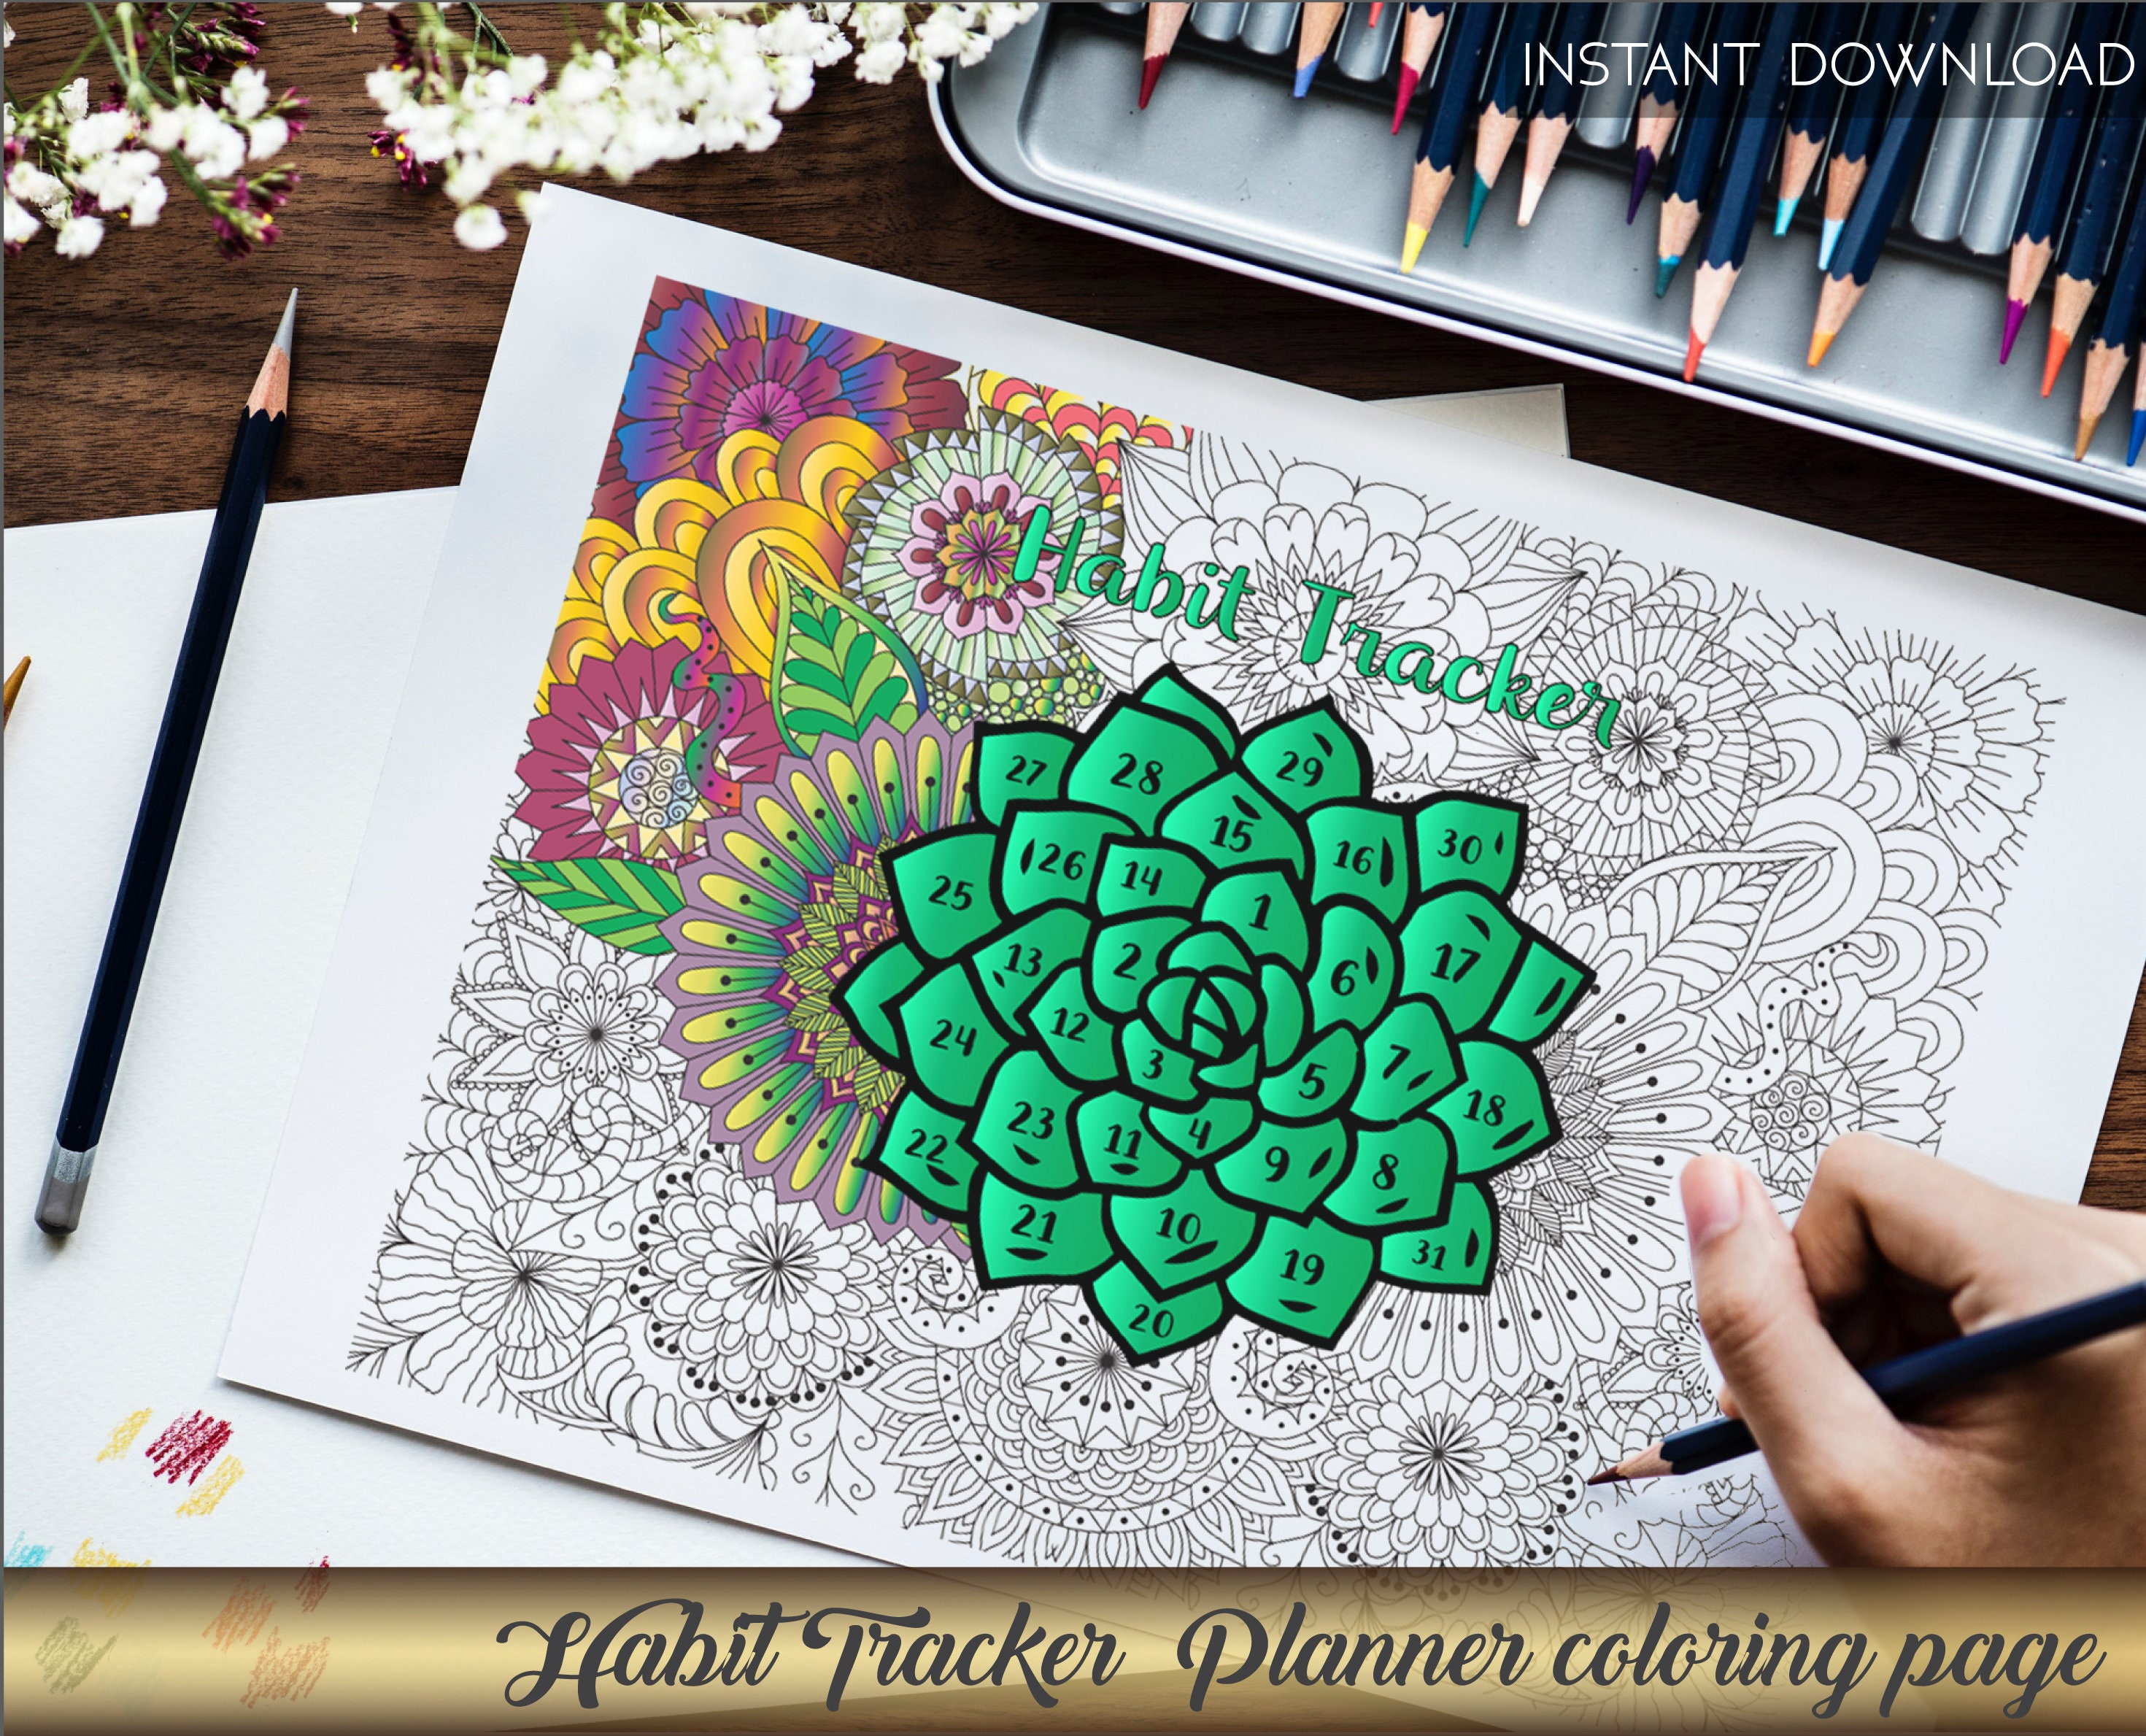 Coloring page Habit tracker Coloring book Printable coloring | Etsy